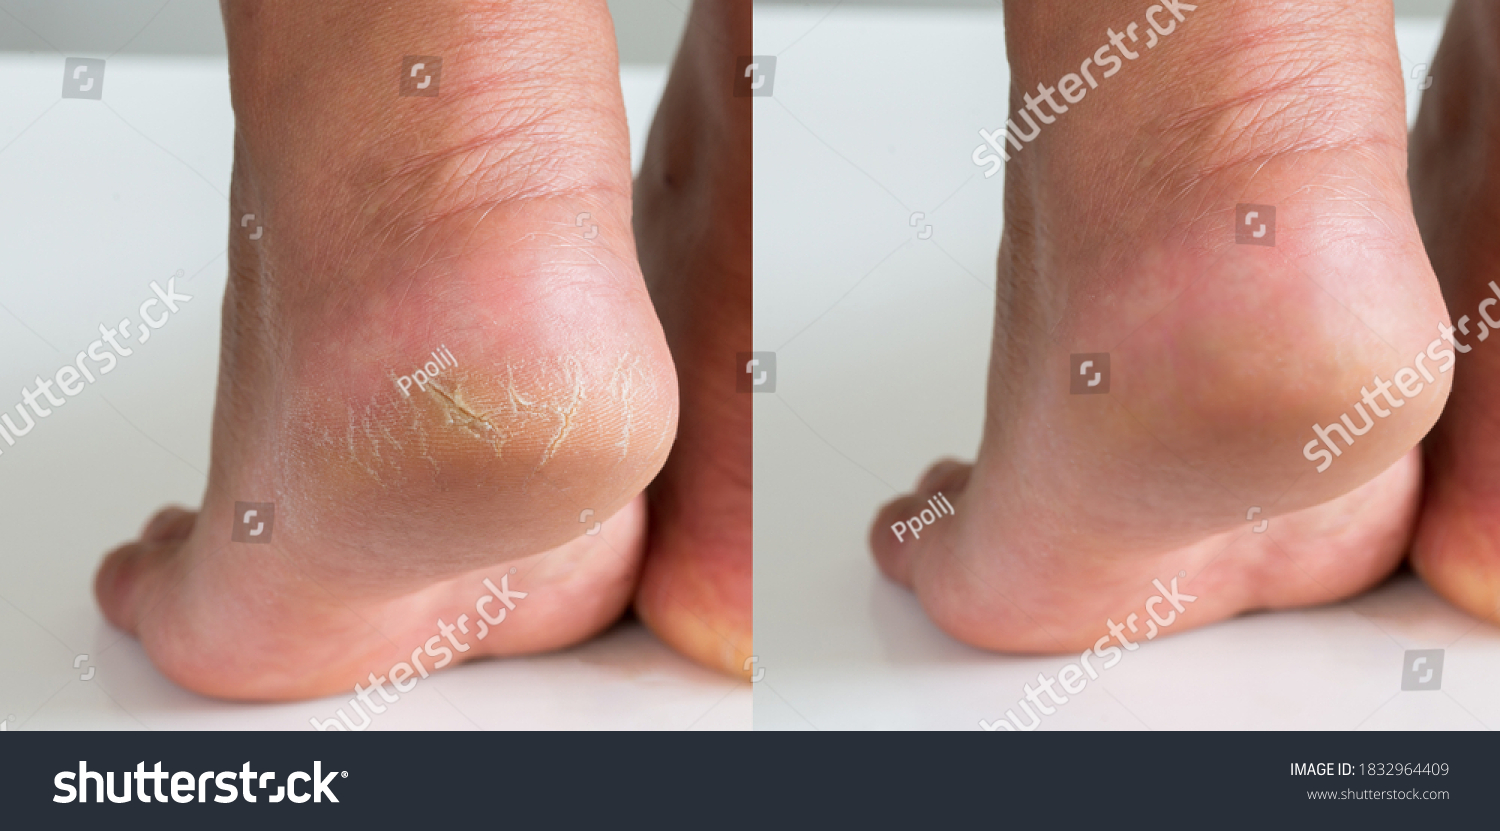 Image before and after treatment of dry heels cracks skin dehydrated skin on heels of female feet. #1832964409